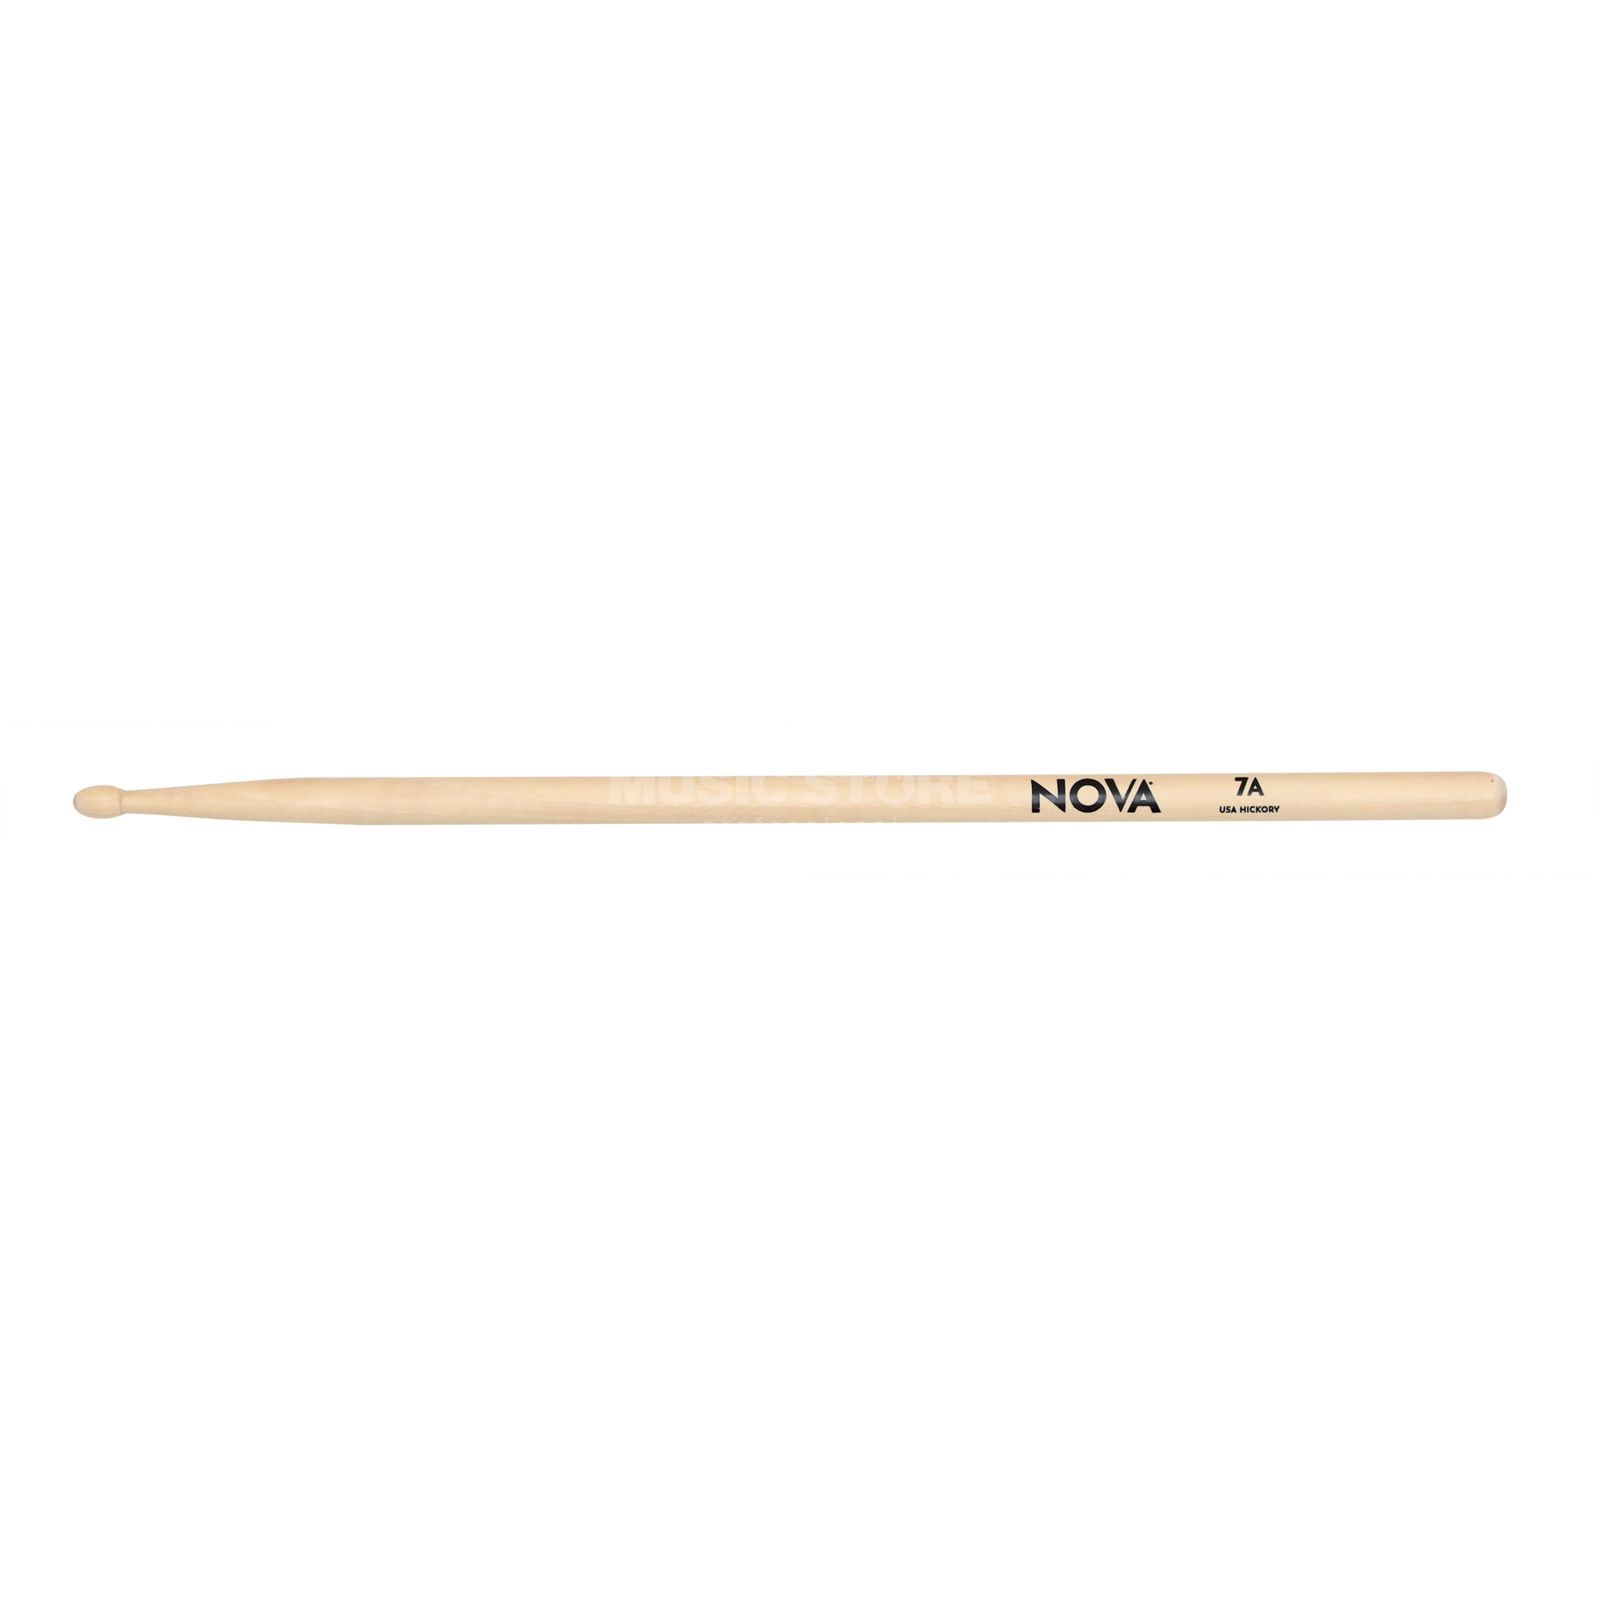 Vic-Firth Nova Drum Sticks 7A, Wood Tip Produktbillede